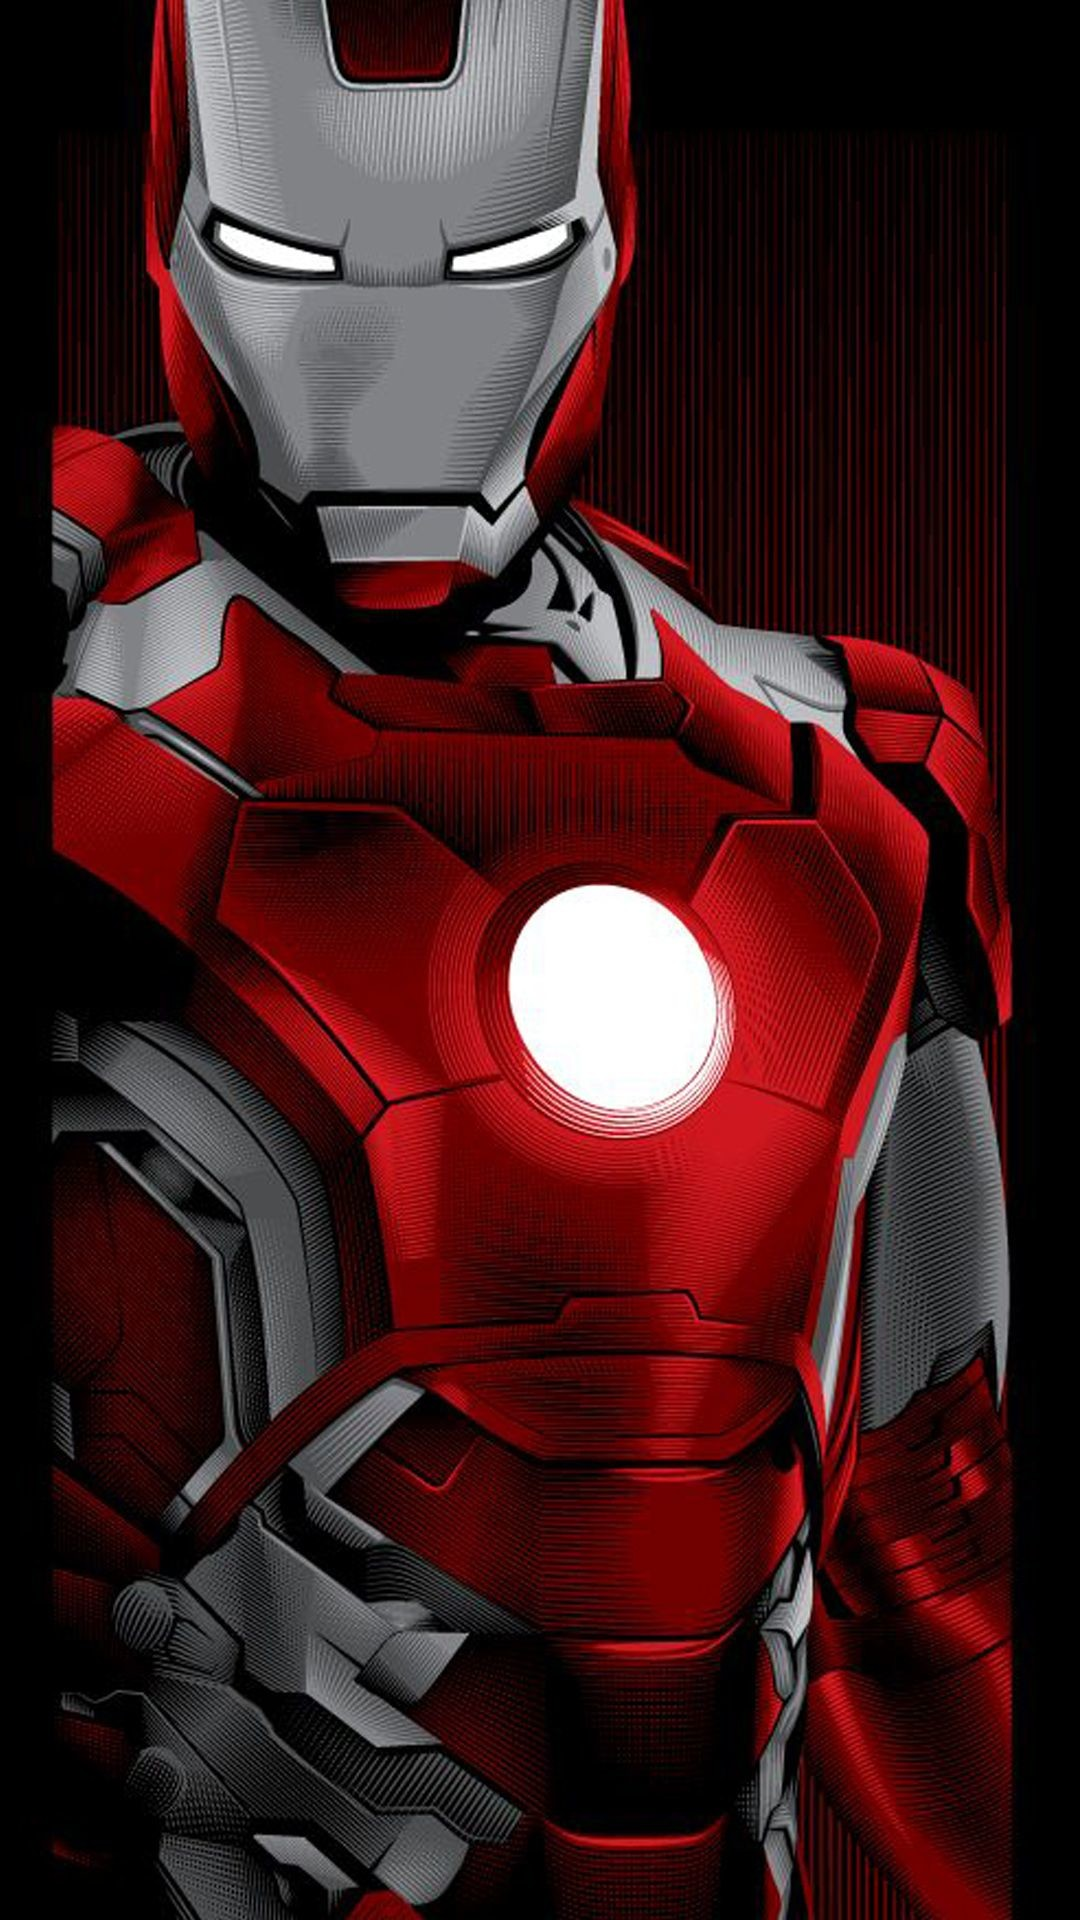 Res: 1080x1920, Ironman Iphone Wallpaper HD - Live Wallpaper HD